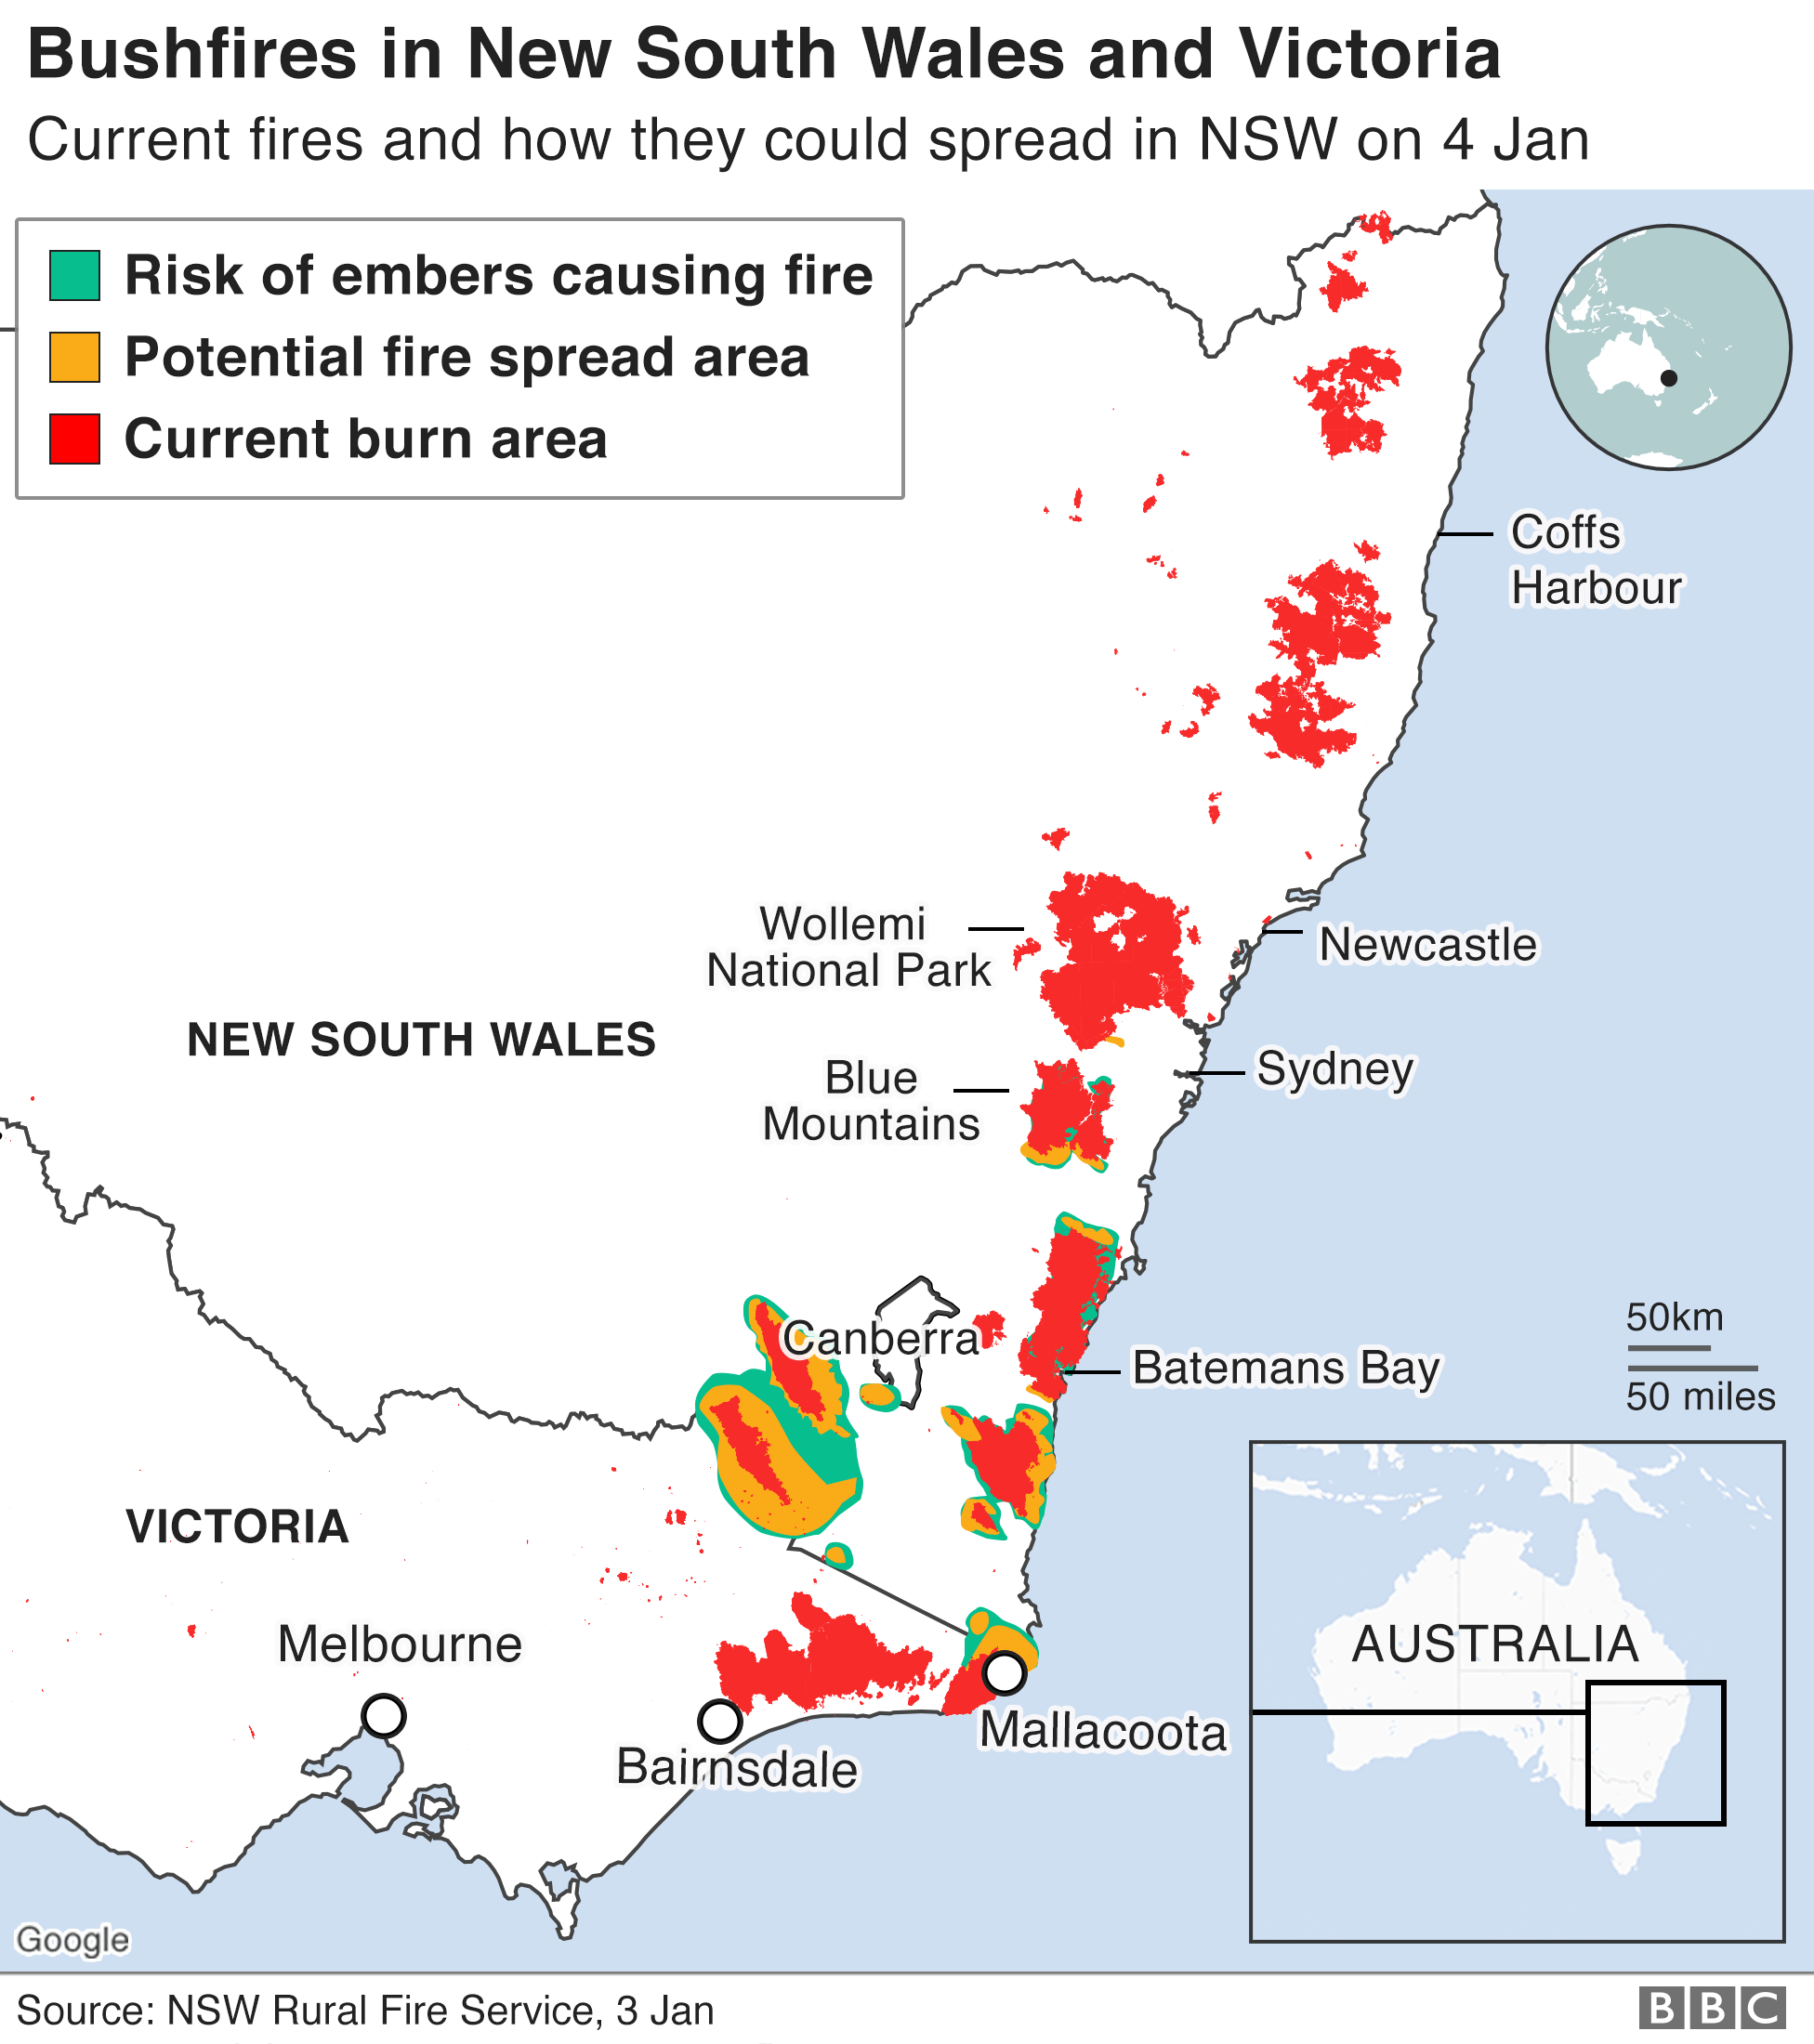 Graphic: possible spread of fires in NSW